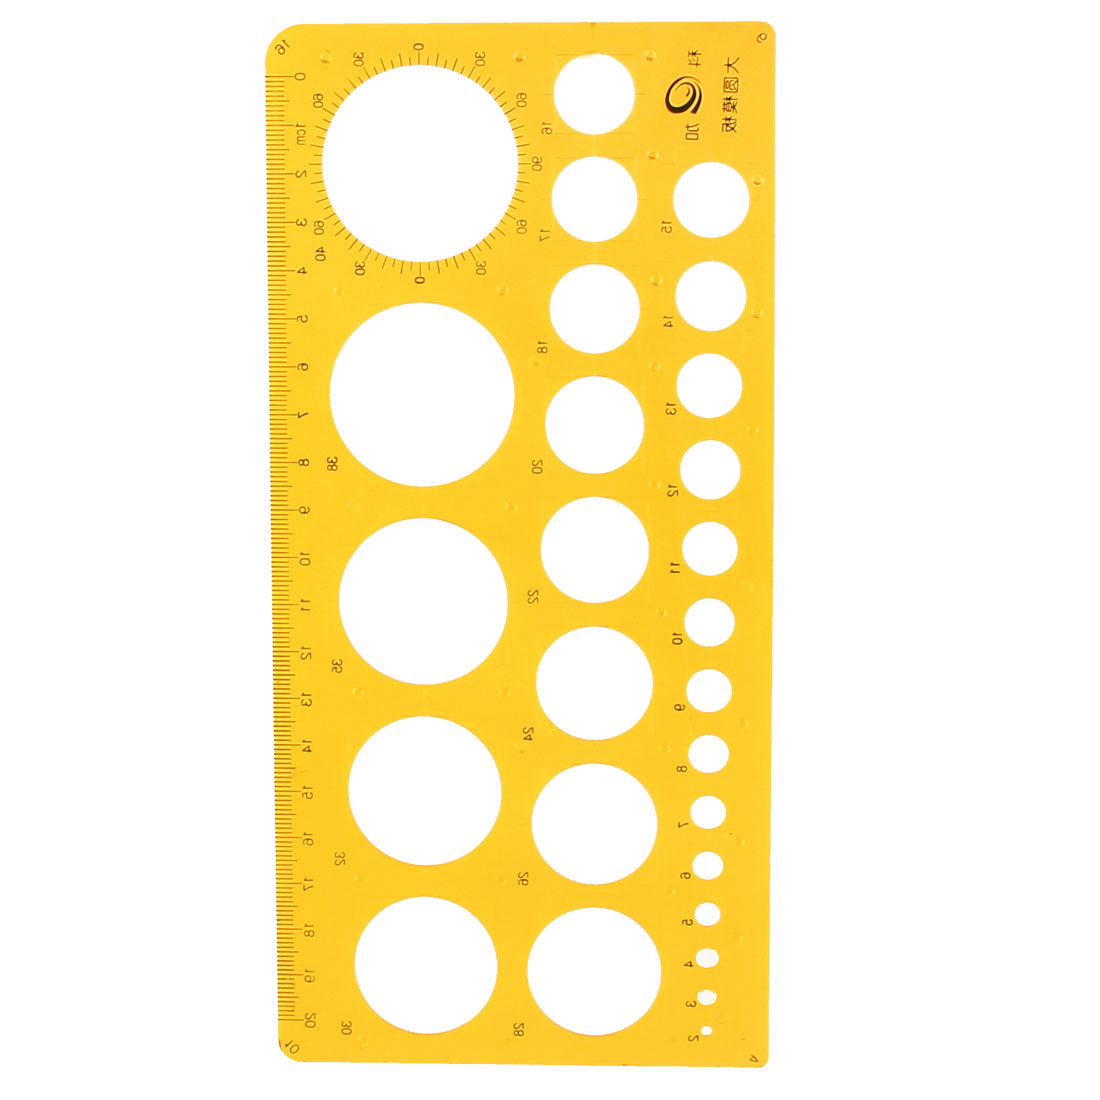 1mm-37mm Diameter Range Circles Drawing Accurate Template Ruler Clear Yellow